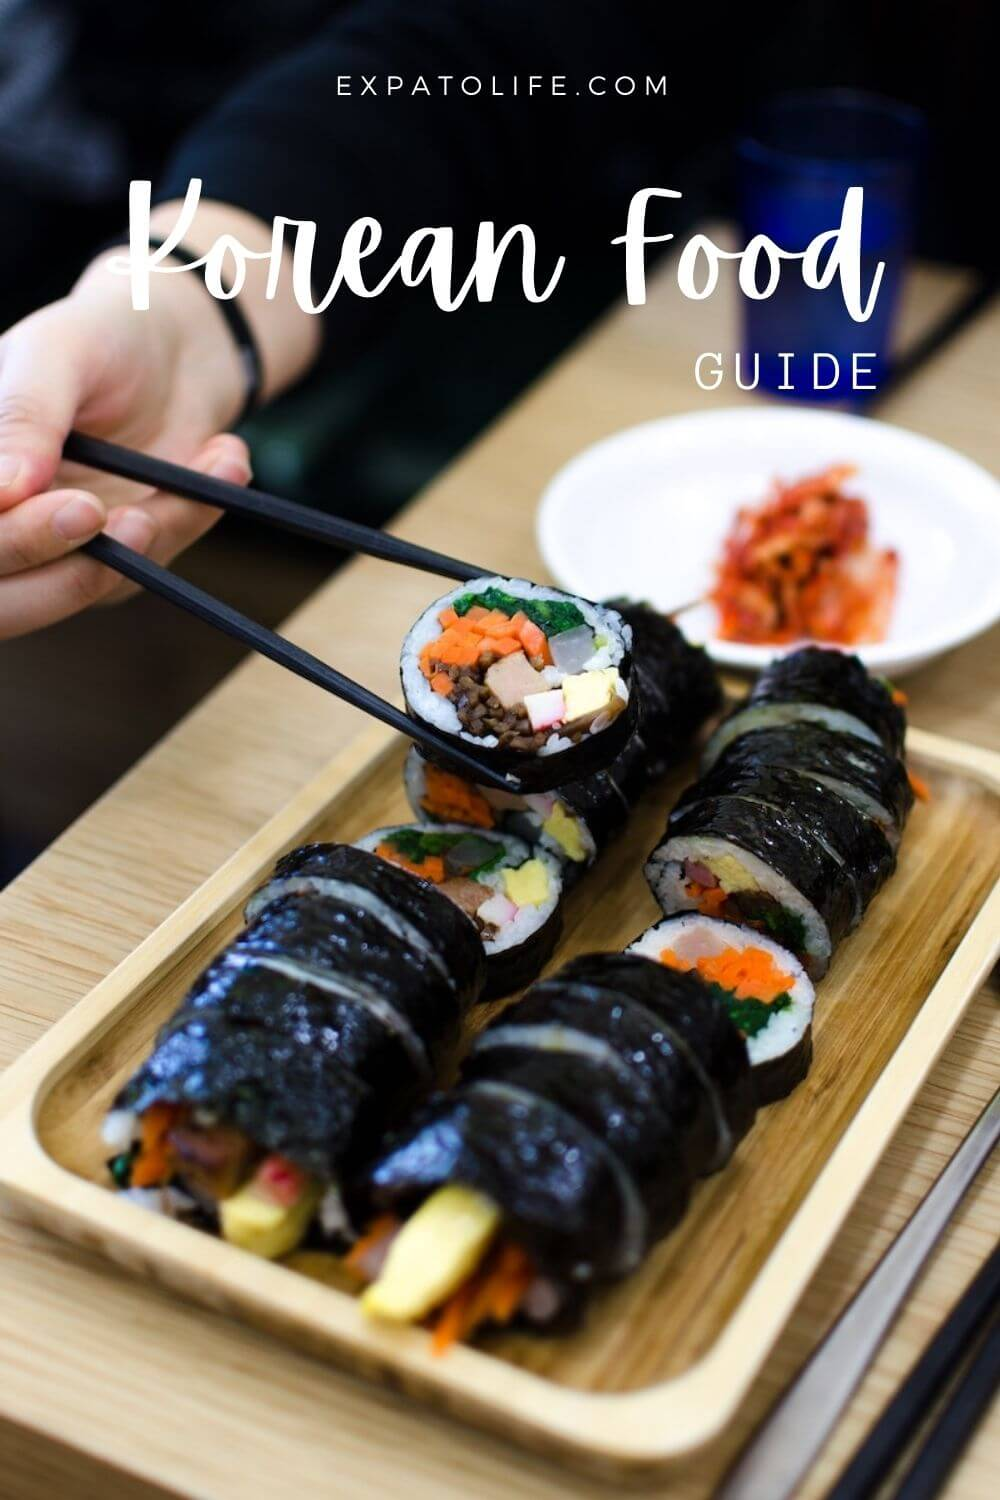 Gimbap Korean food